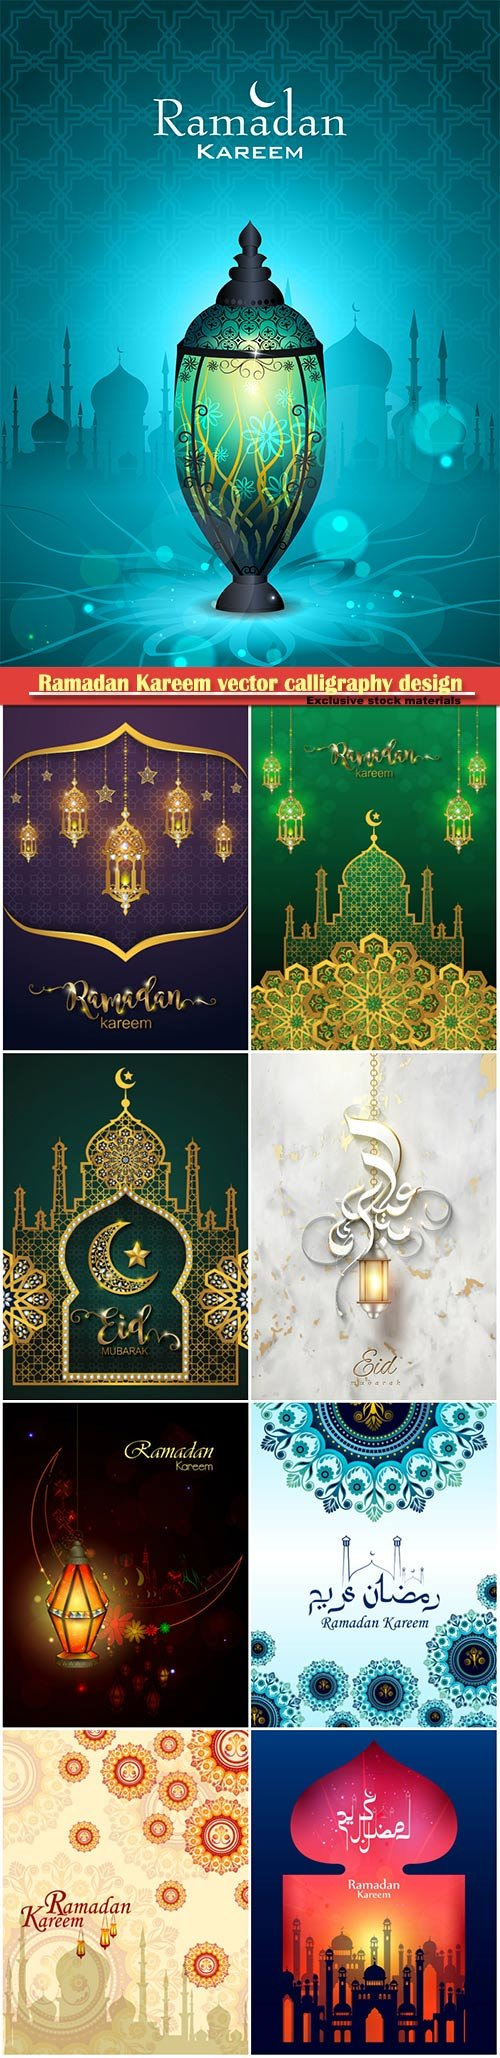 Ramadan Kareem vector calligraphy design with decorative floral pattern, mosque silhouette, crescent and glittering islamic background # 53